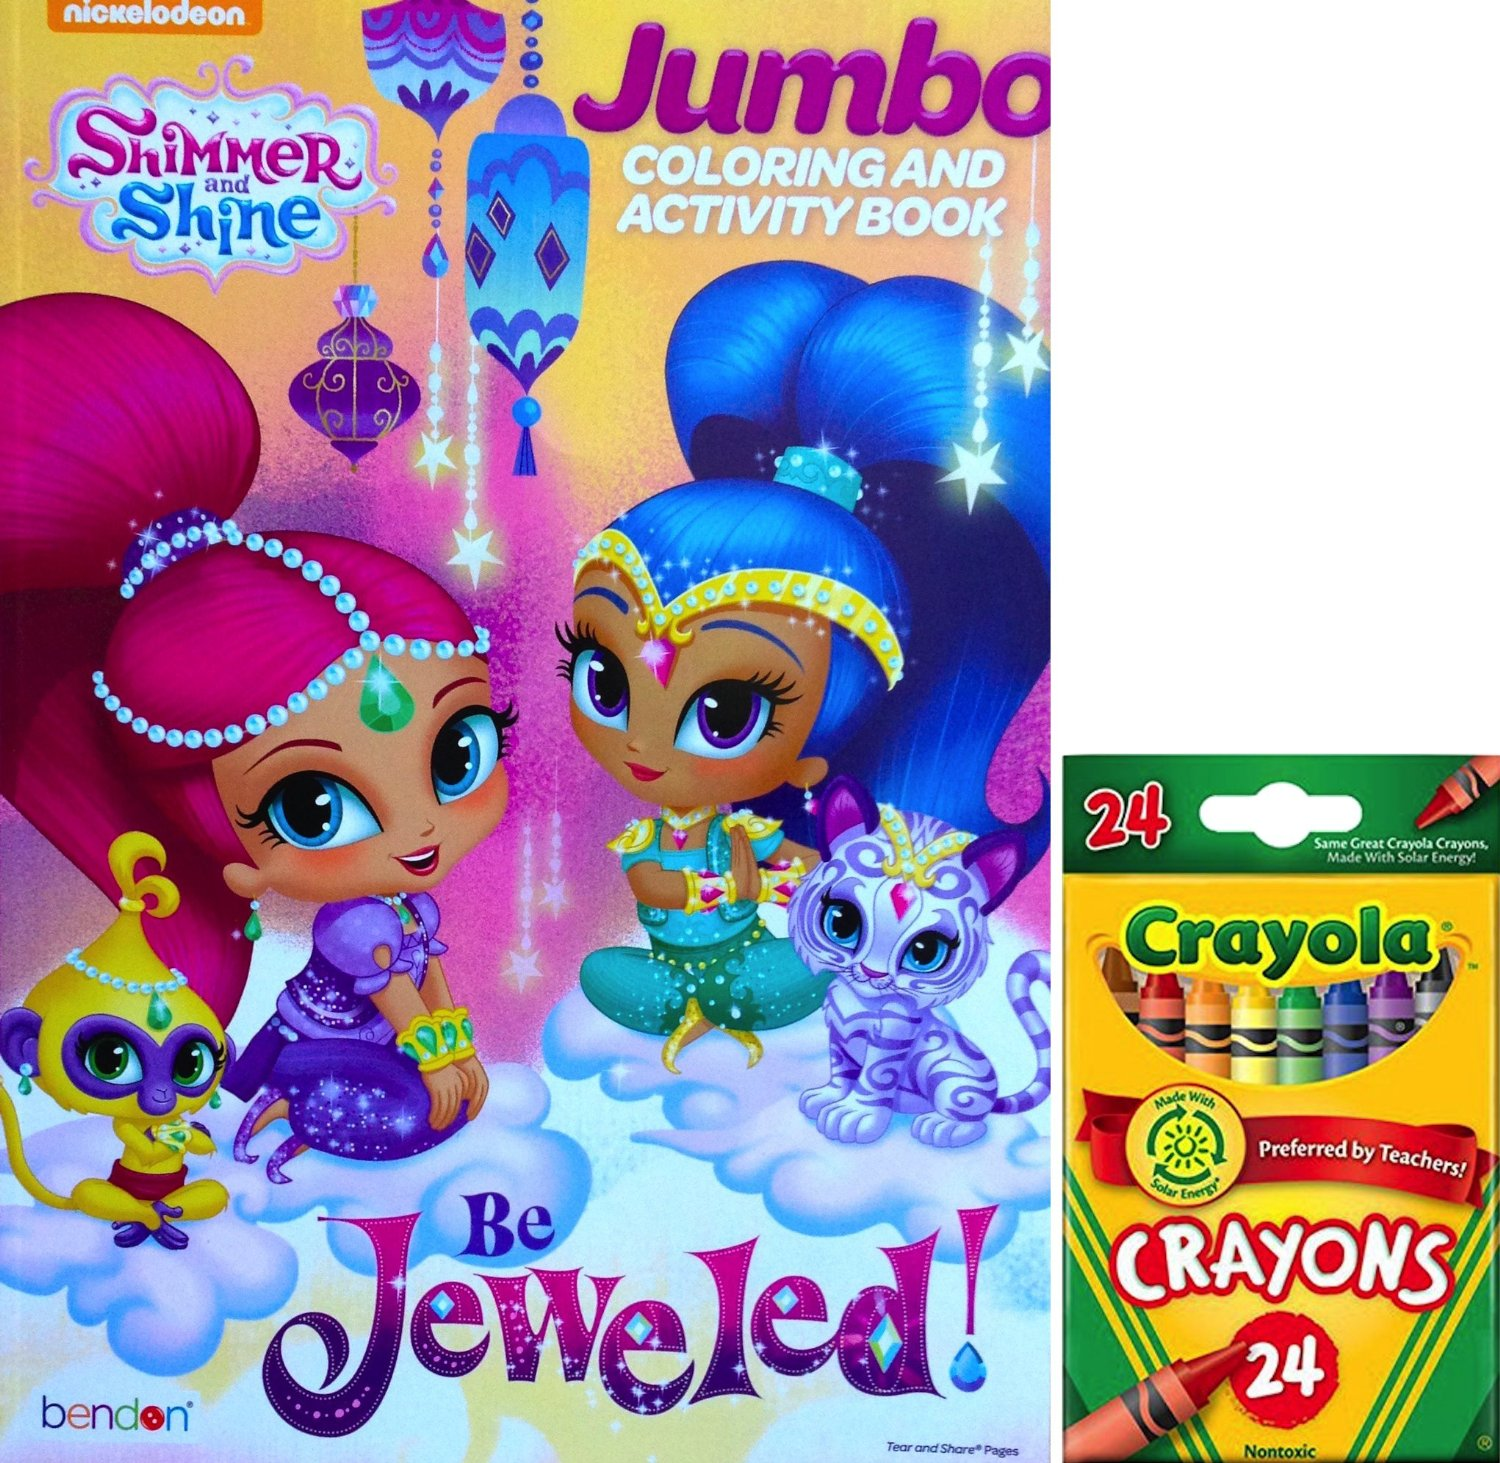 buy shimmer and shine jumbo coloring and activity book be jeweled